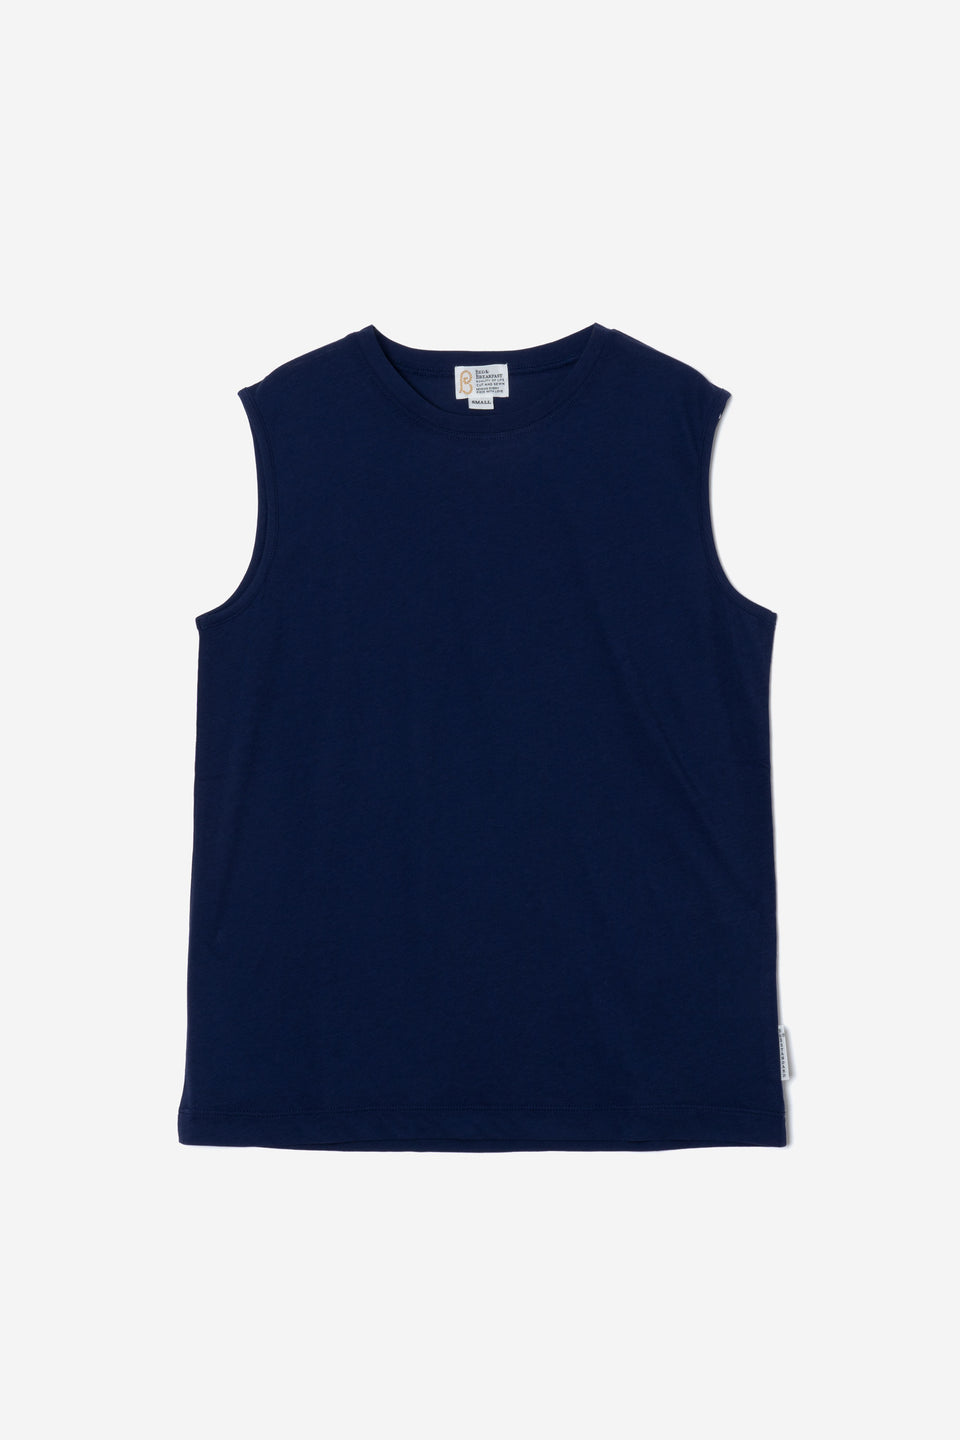 Technorama Standard Tank in Navy